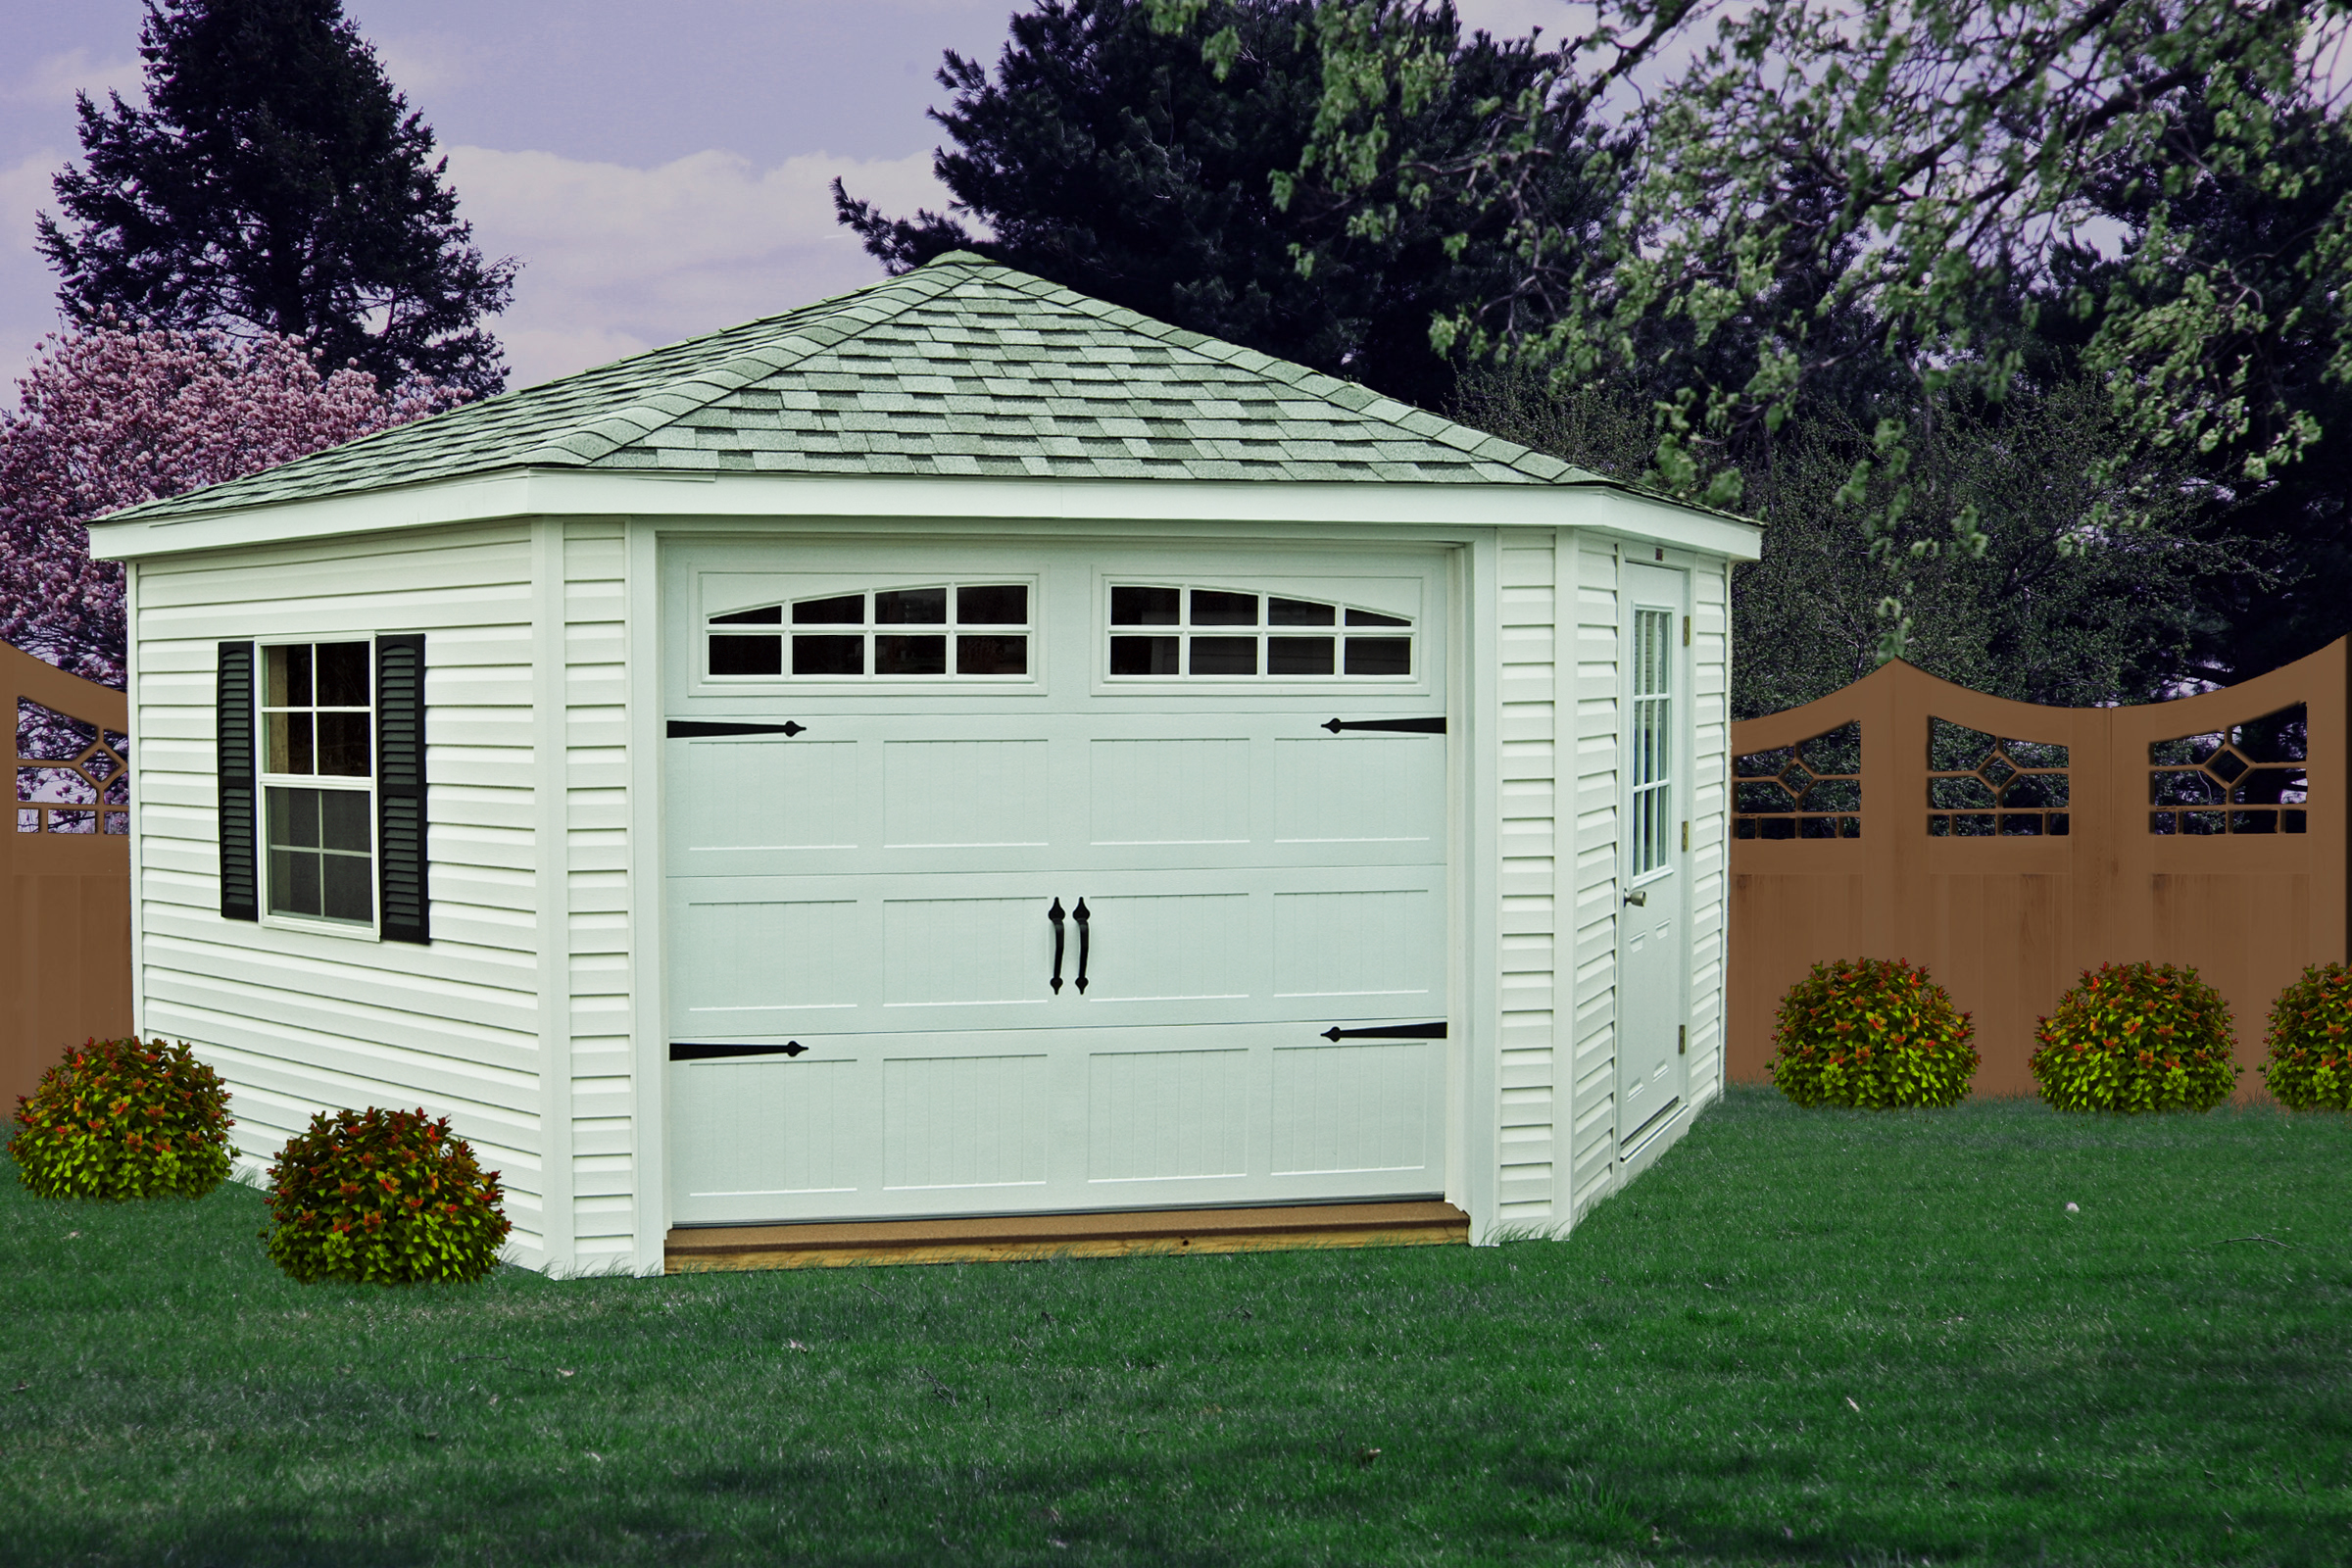 A Corner Garden Shed Will Improve Your Life - Cool Shed Deisgn